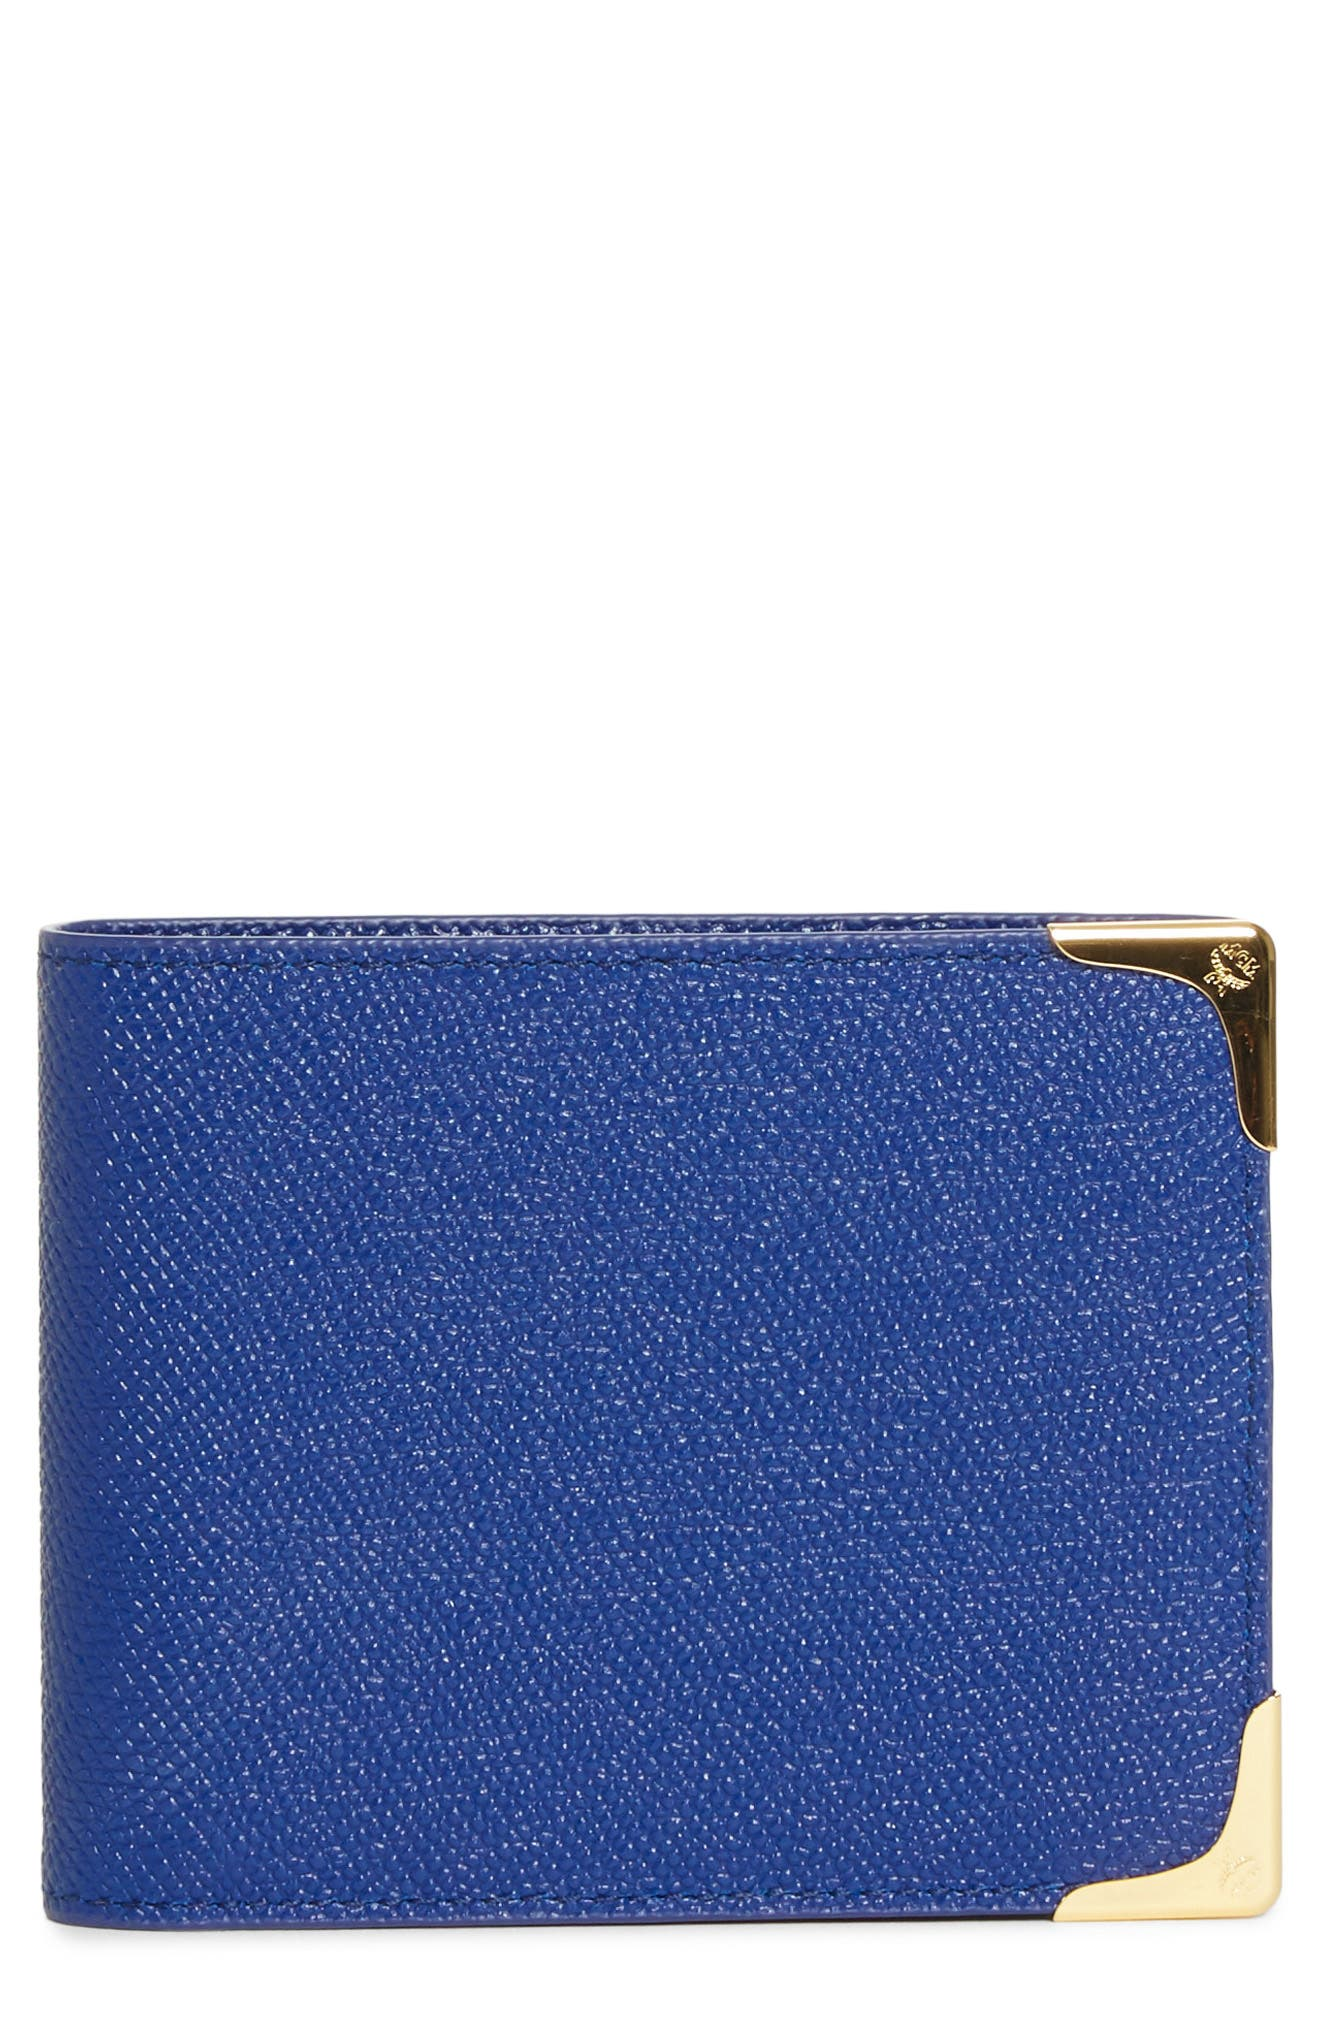 Small RGB Coin Wallet, Main, color, BLUE